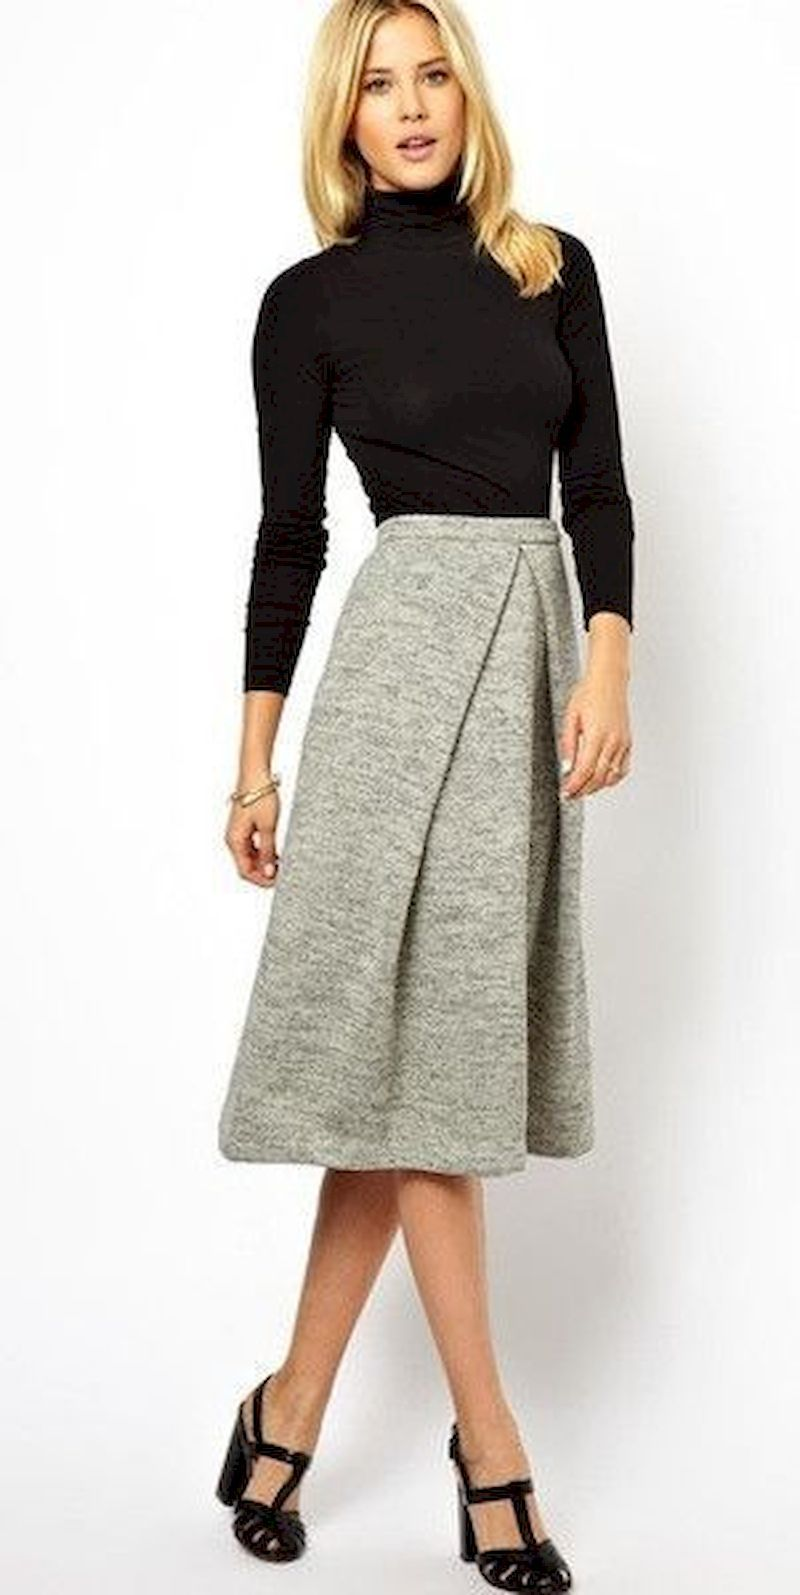 ca1326006d What I Wore: Talbots A-Line Pocket Skirt | Pretty Plus-Size Workwear |  Skirts with pockets, How to wear, What i wore